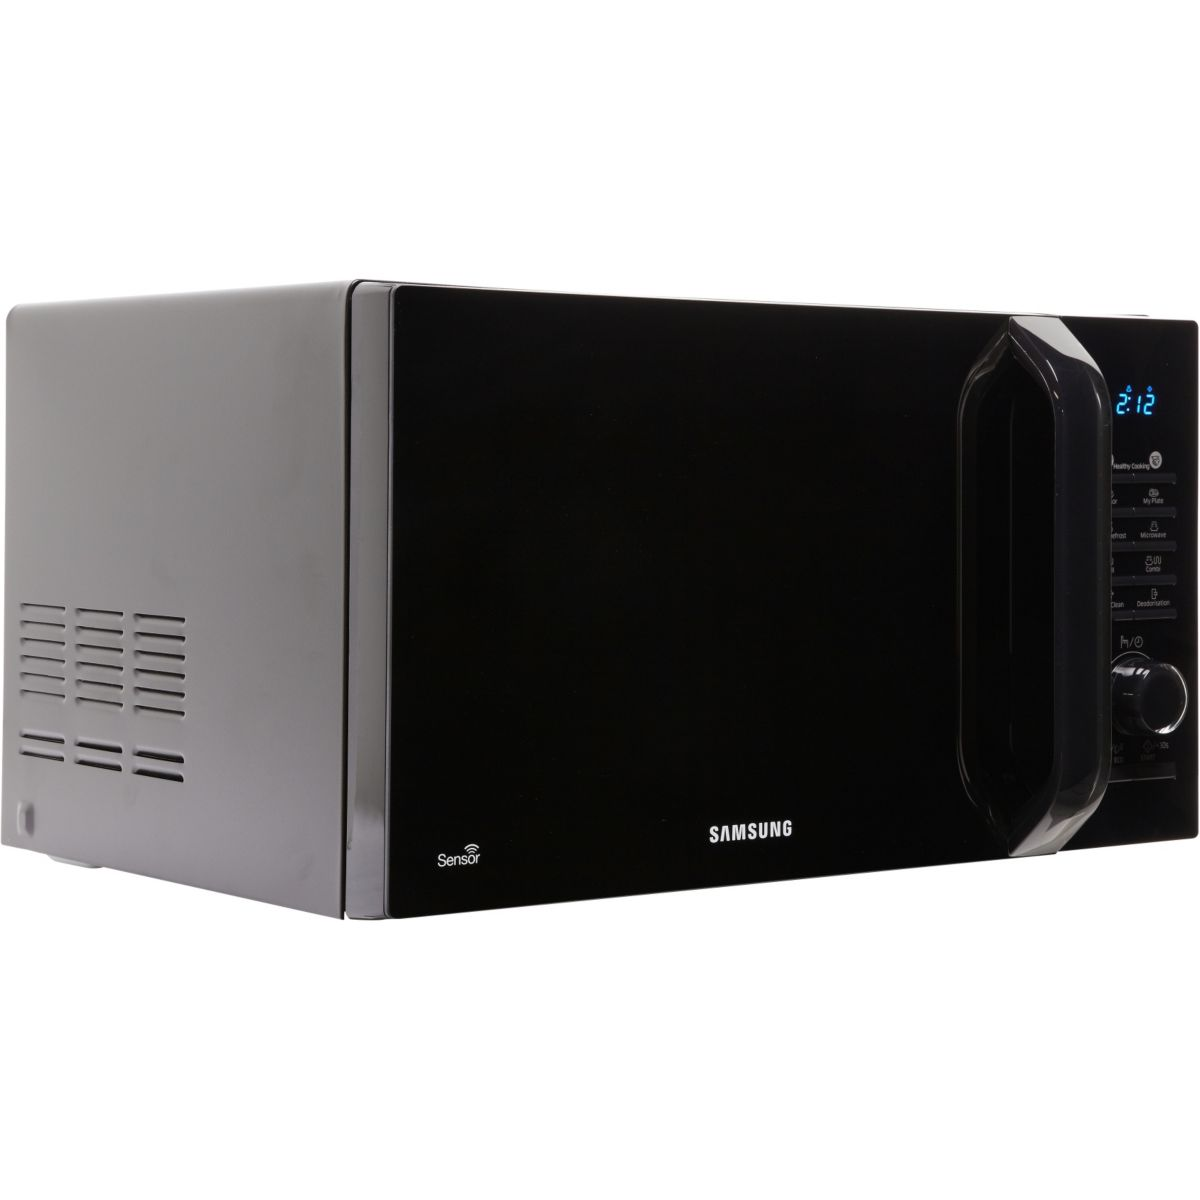 Samsung mg28h5125nk micro onde avec fonction grill comparer avec - Samsung micro ondes grill ...